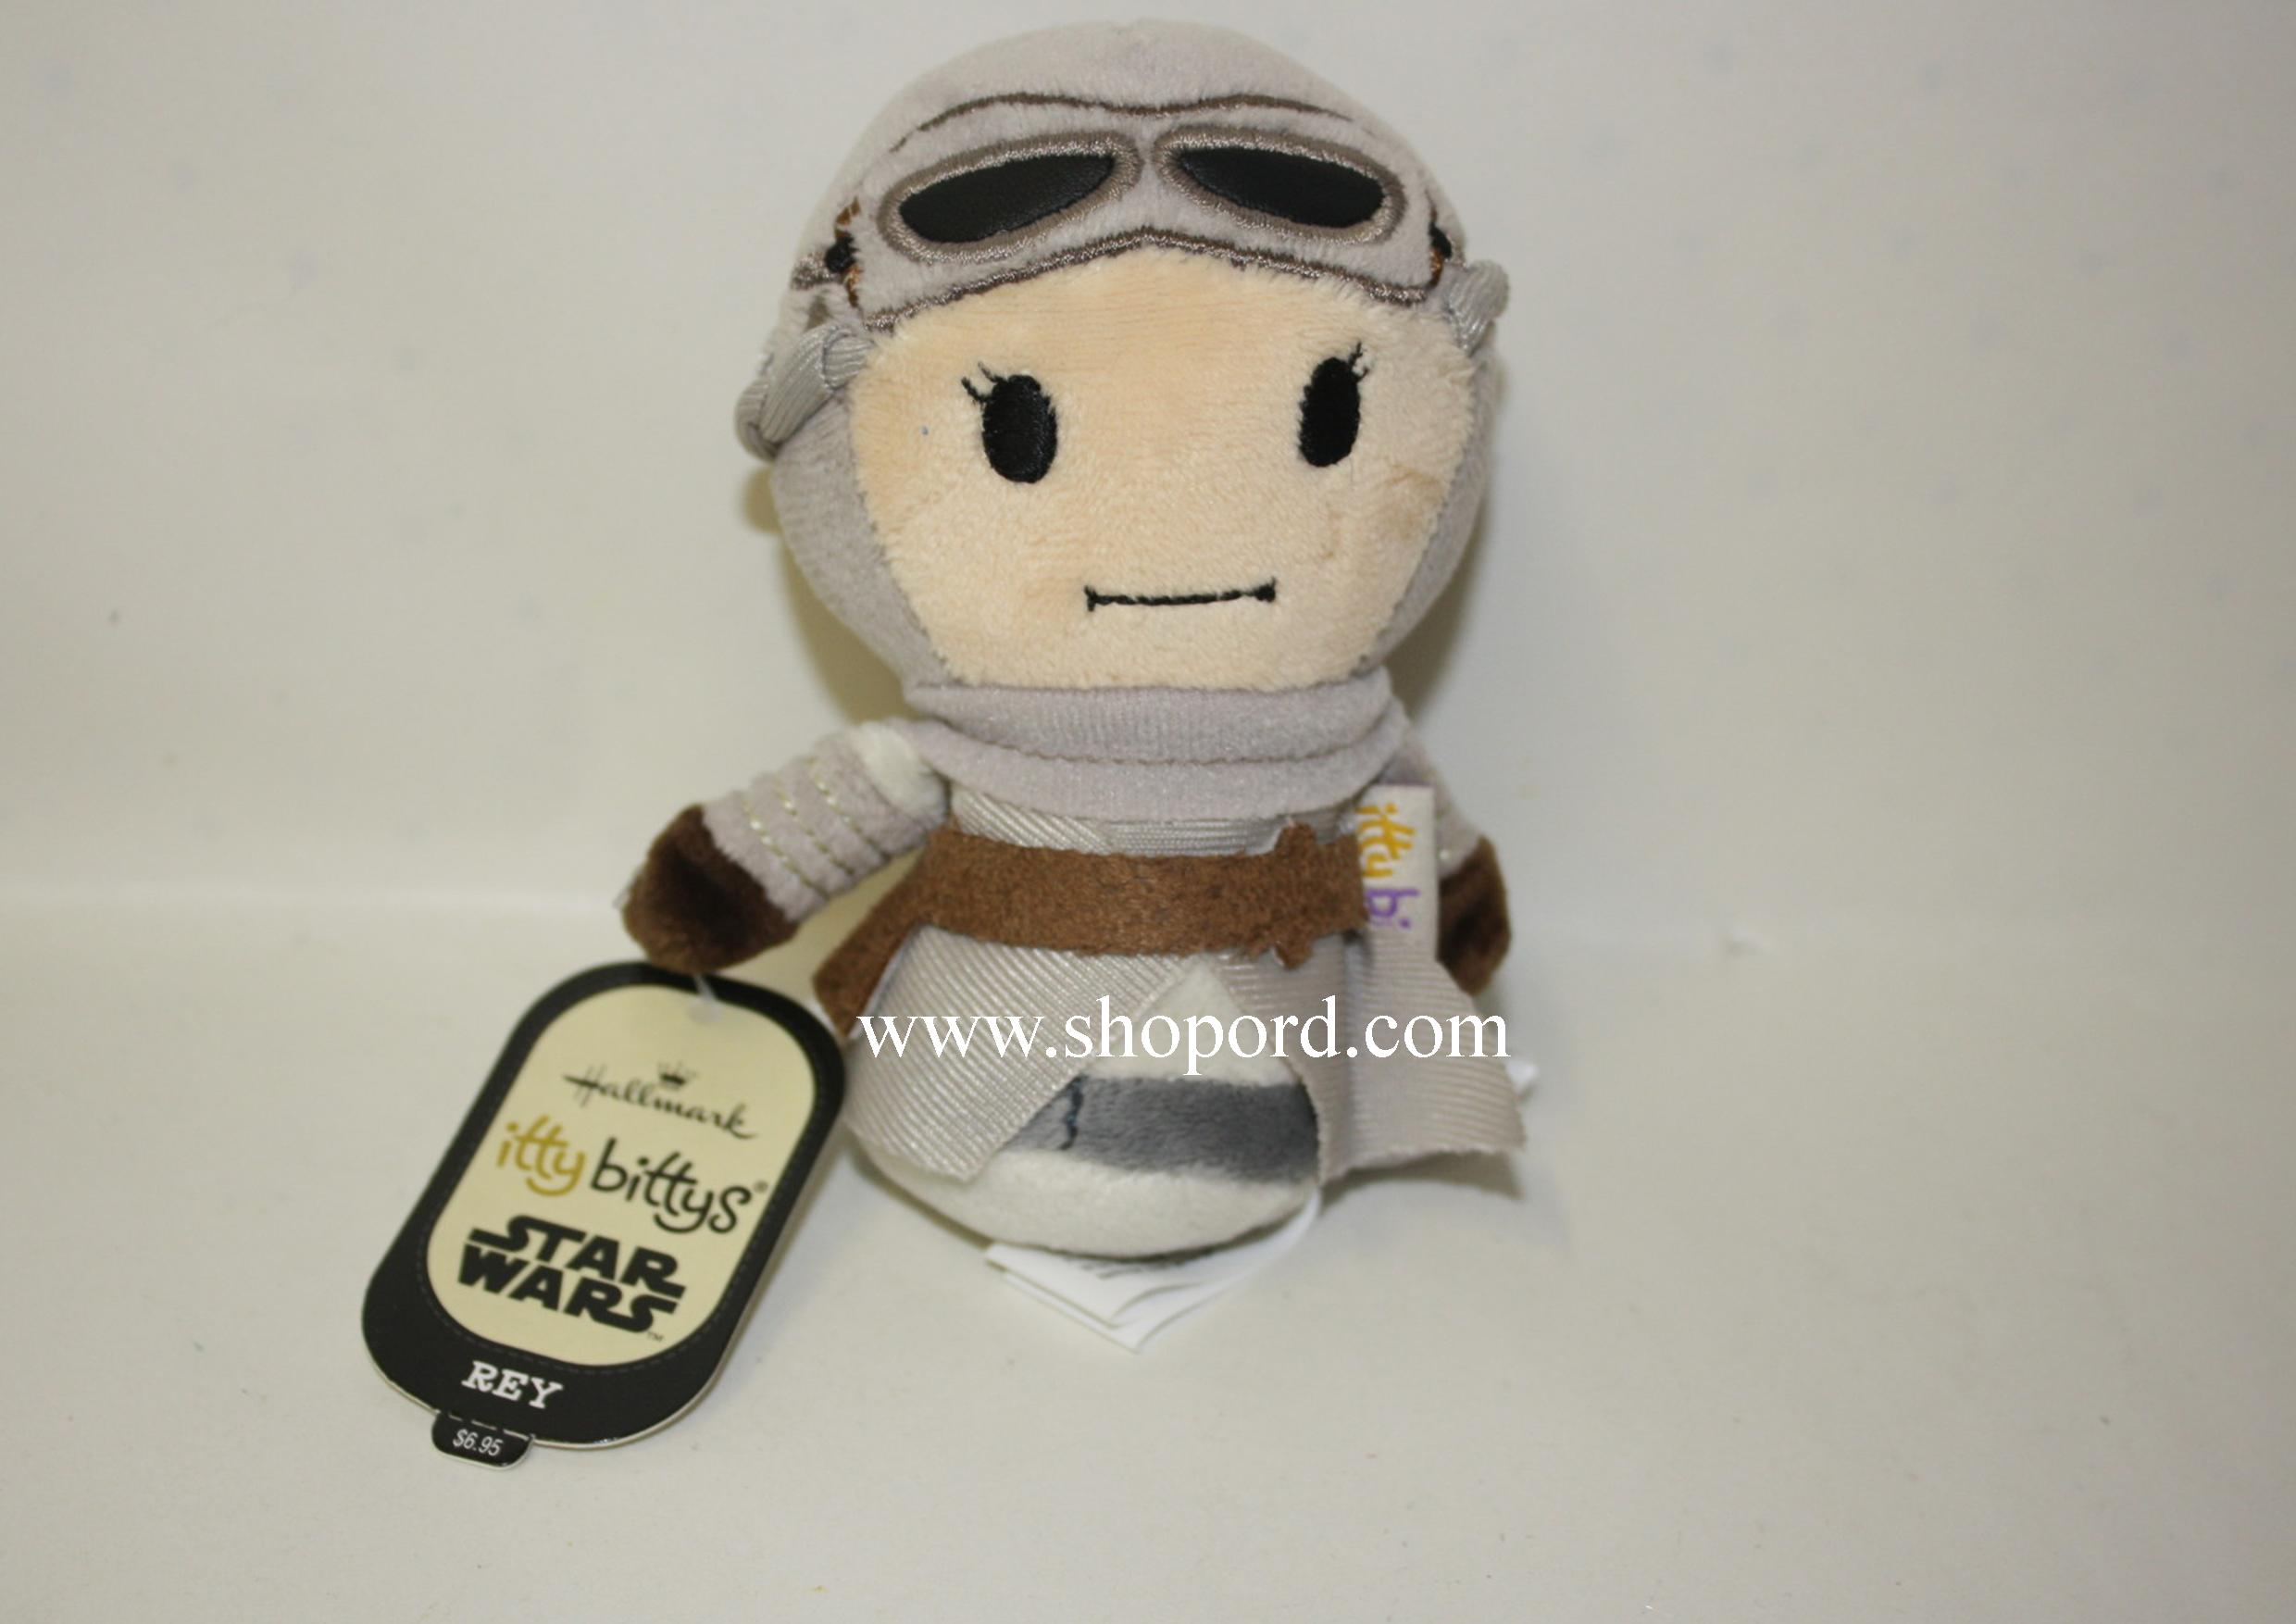 Hallmark itty bitty Rey Star Wars Disney Plush KDD1074